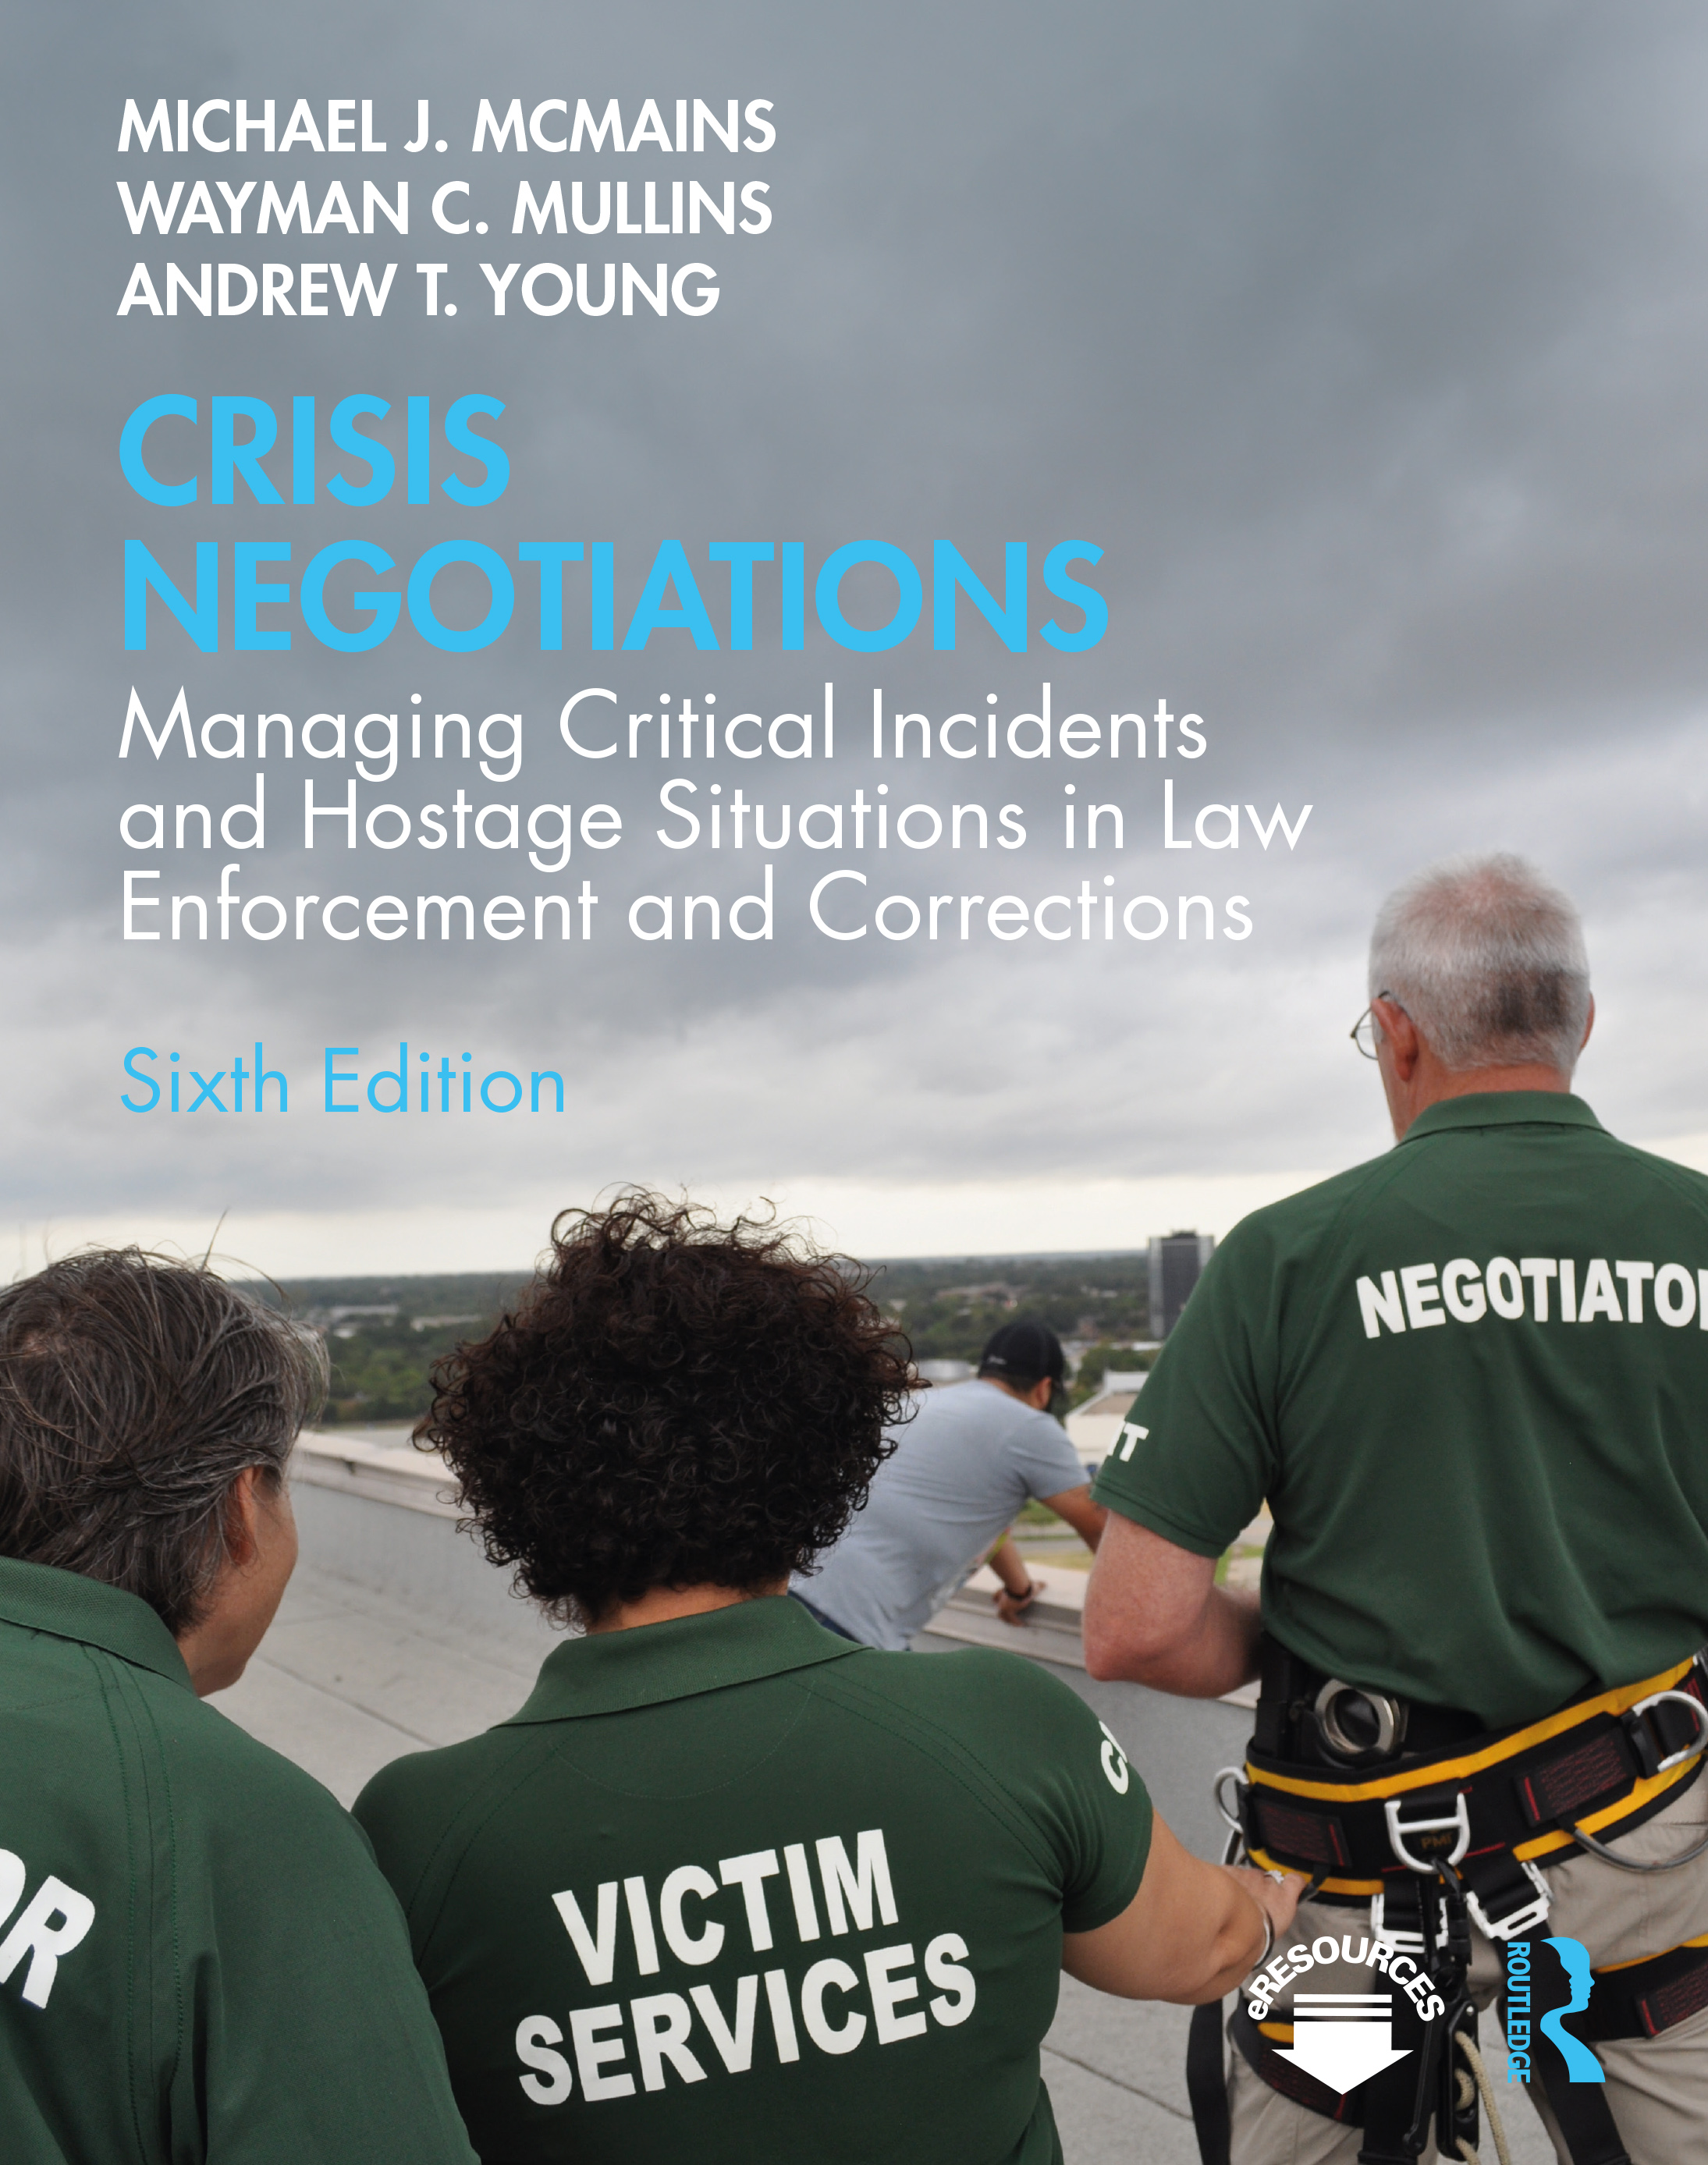 Crisis Negotiations: Managing Critical Incidents and Hostage Situations in Law Enforcement and Corrections book cover